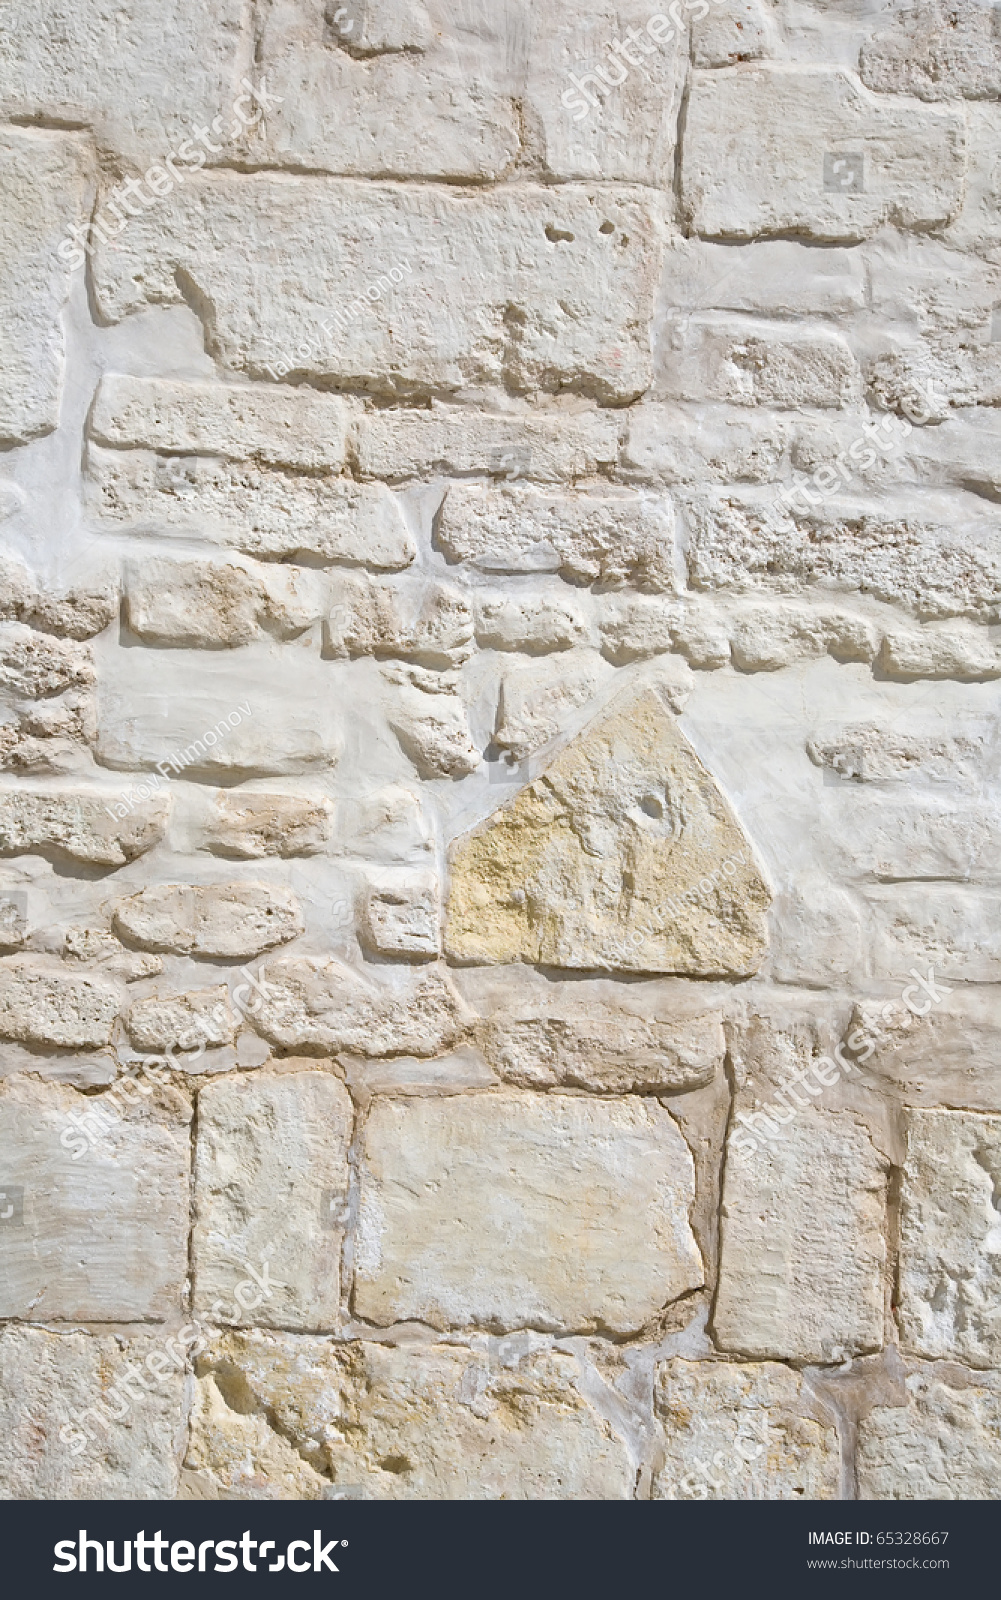 Vintage Stone Walls : Surface of vintage stone wall at old house stock photo